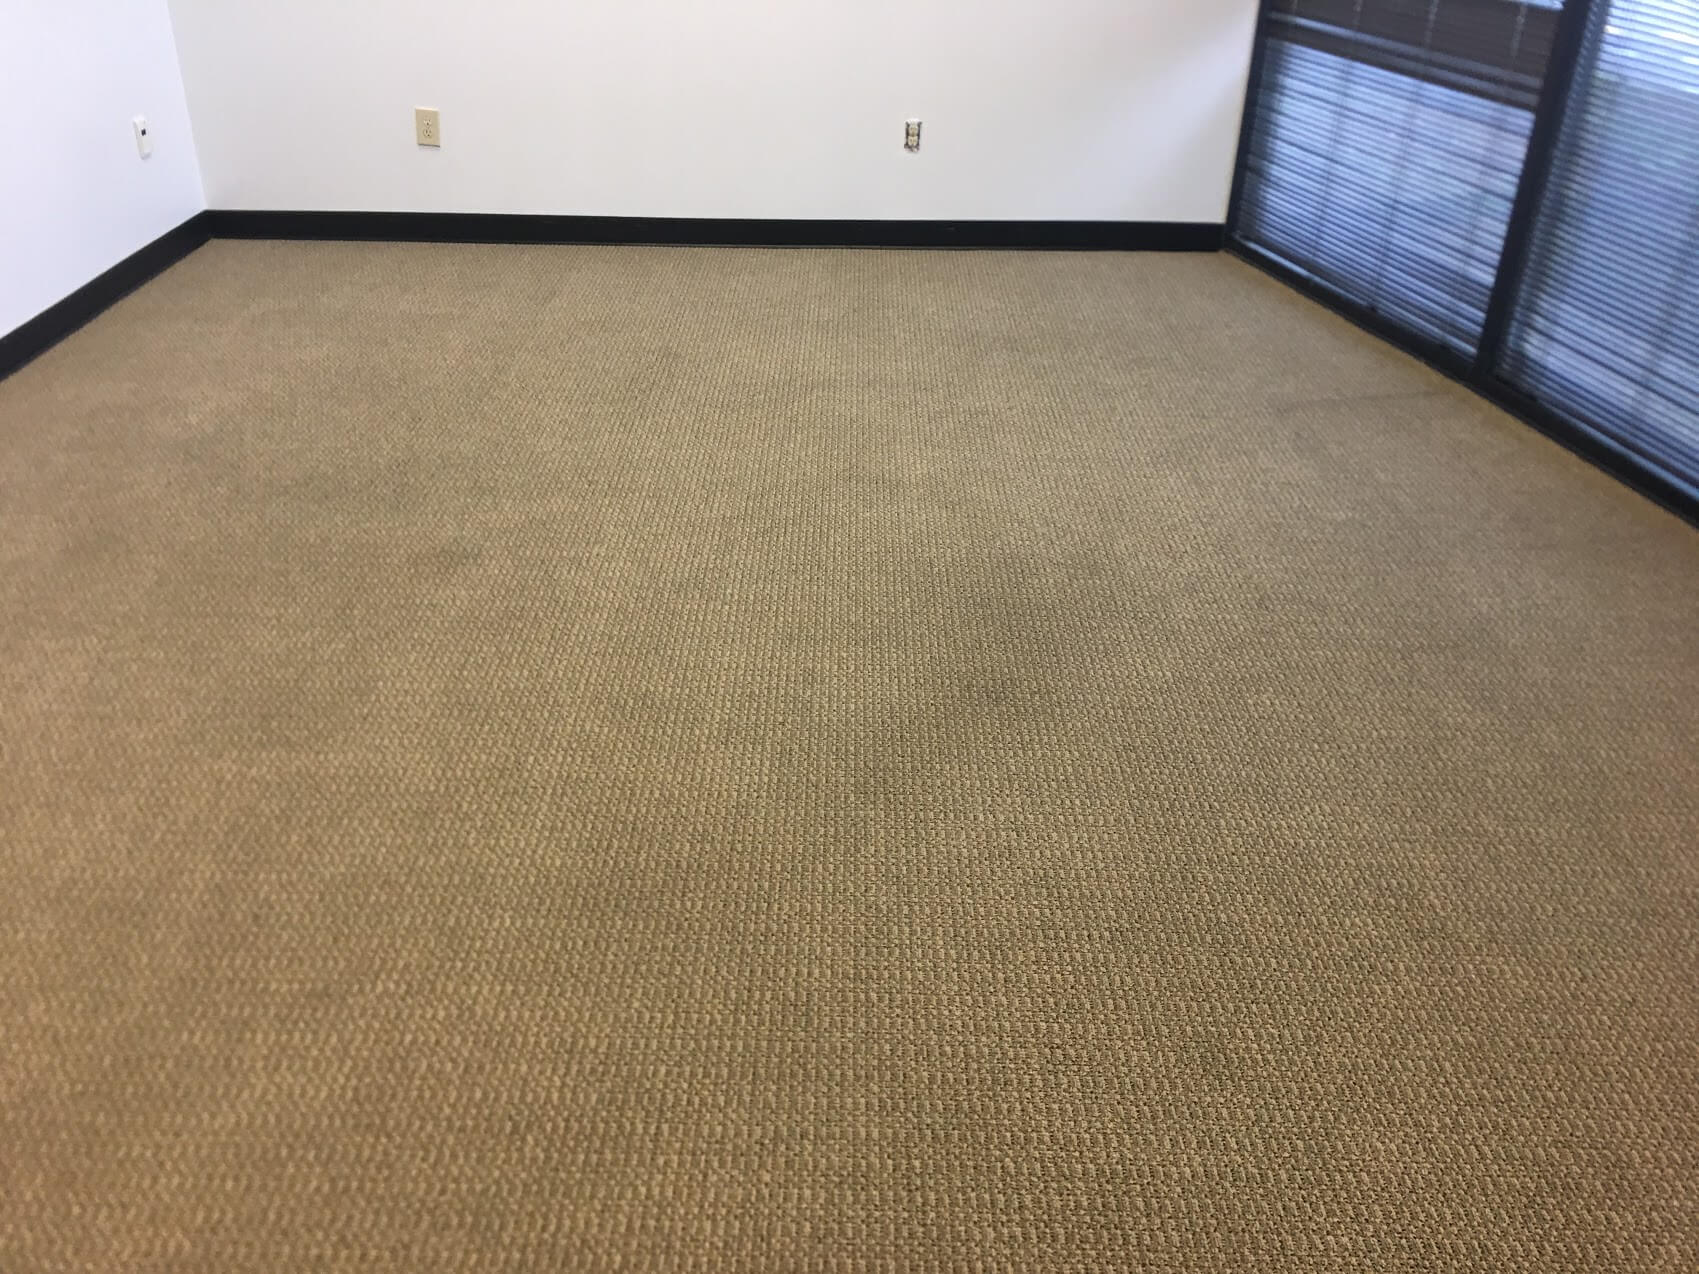 after a commercial carpet cleaning in sandy springs ga